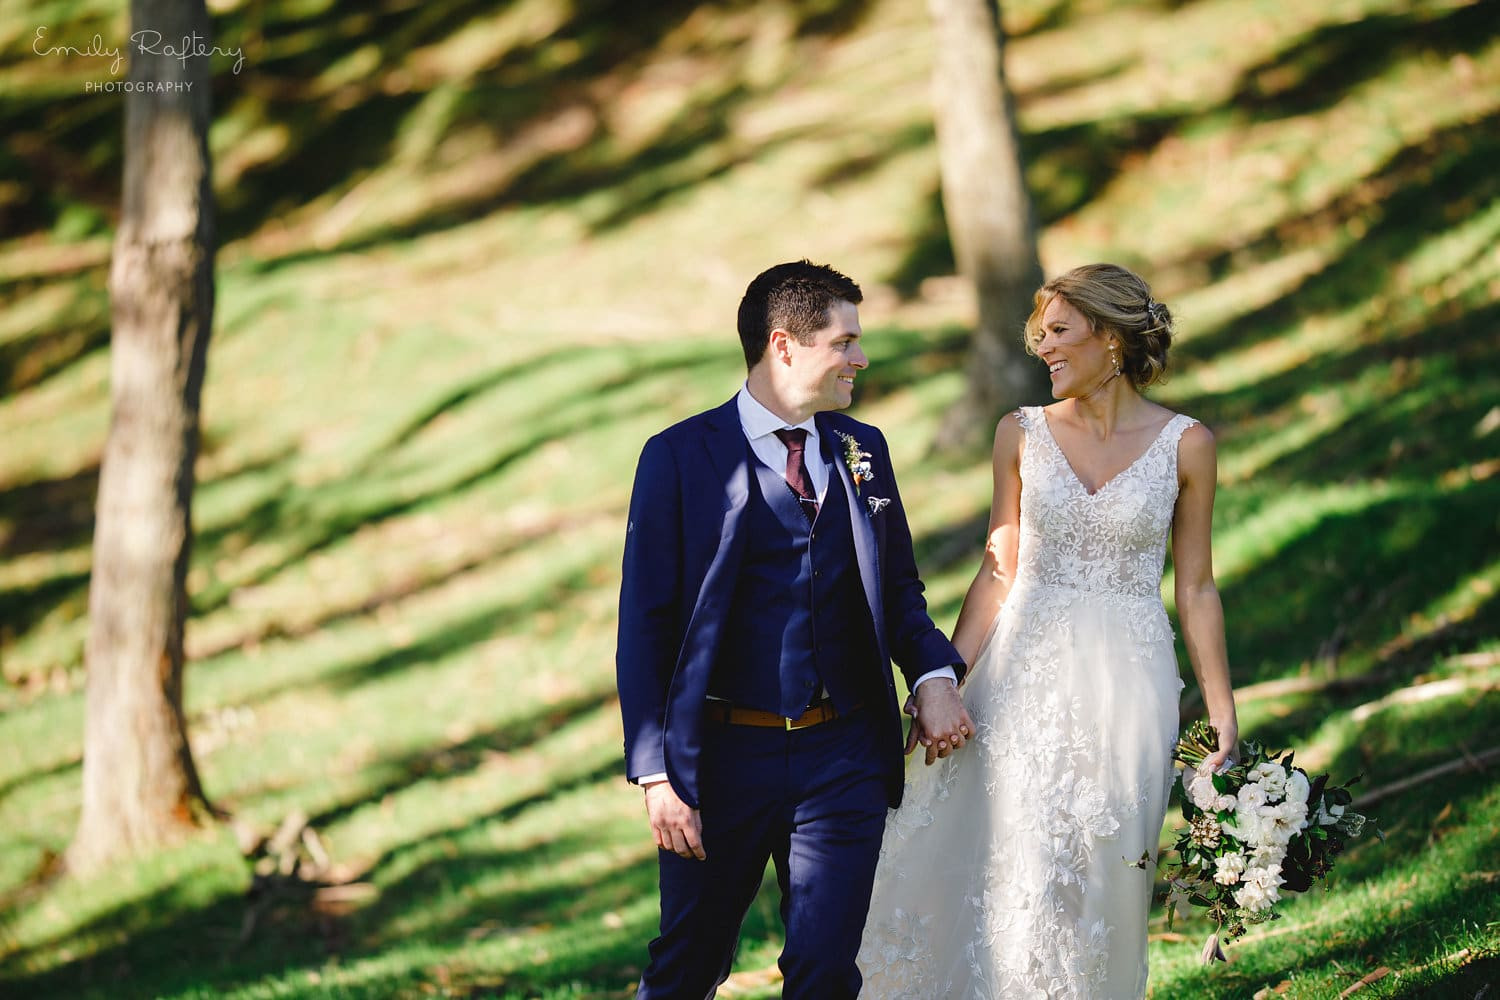 Real Weddings | Vinka Design | Real Brides Wearing Vinka Gowns | Helena and Tim walking through grounds at Kauri Bay Boomrock